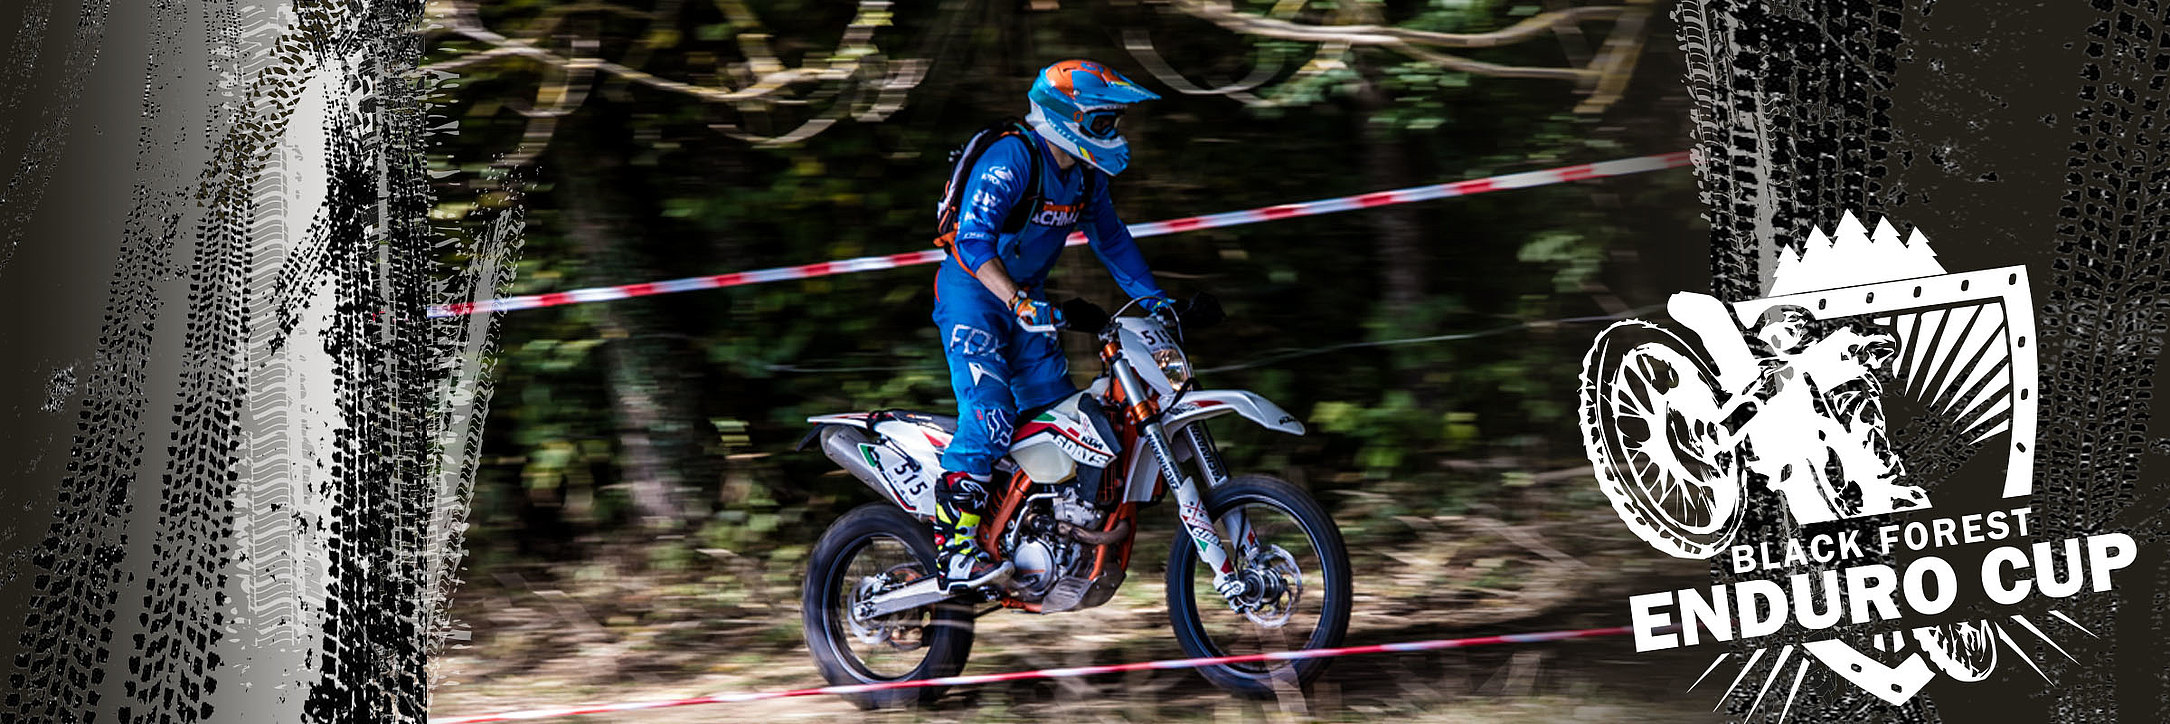 Black Forest Enduro Cup